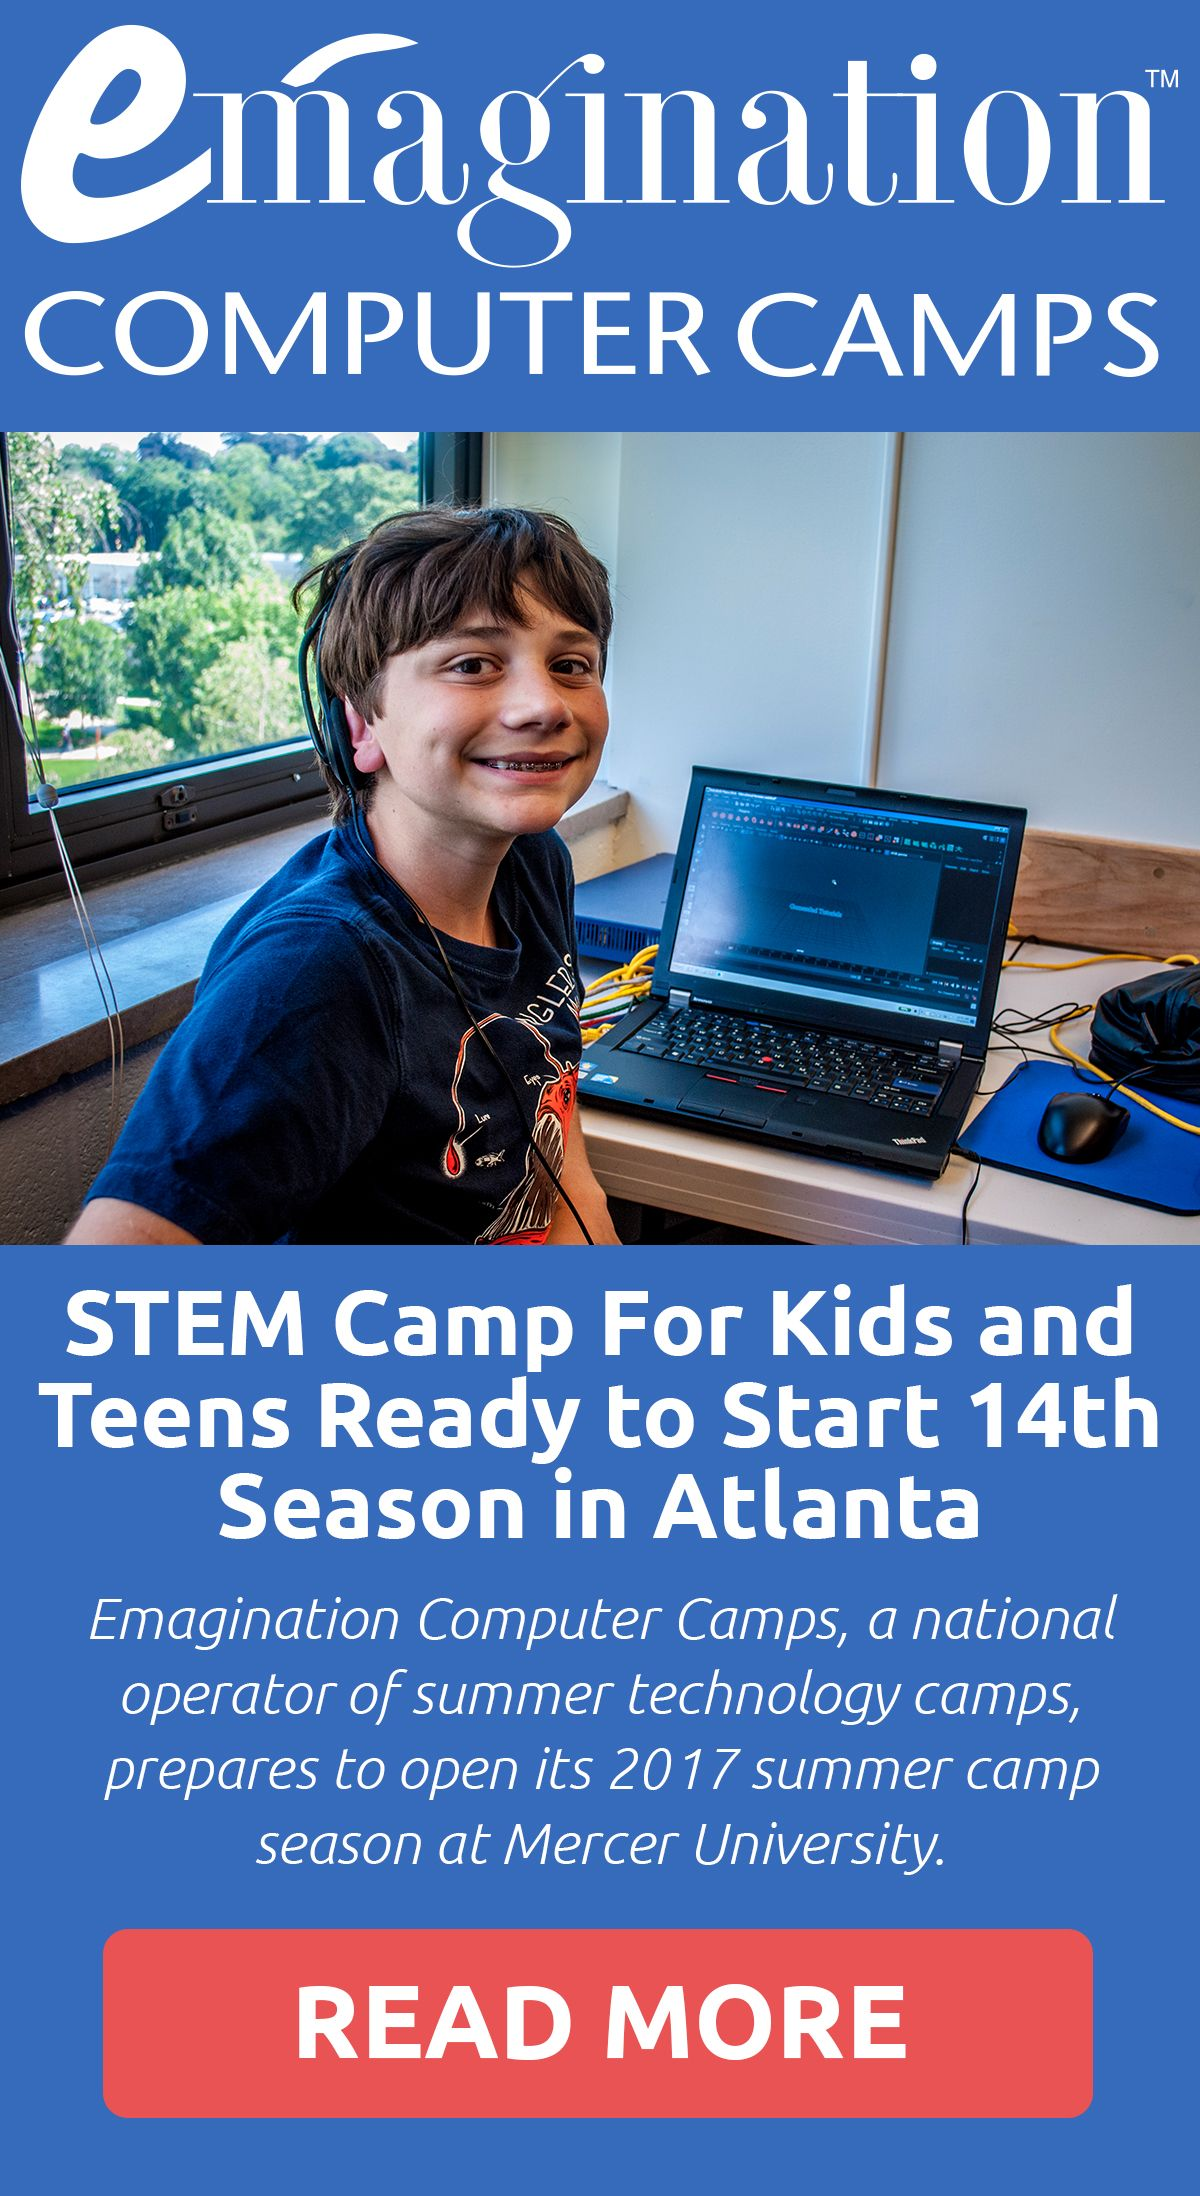 Emagination Computer Camps A National Operator Of Summer Technology Camps Prepares To Open Its 2017 Summer Camp Seaso Computer Camp Stem Camp Technology Camp